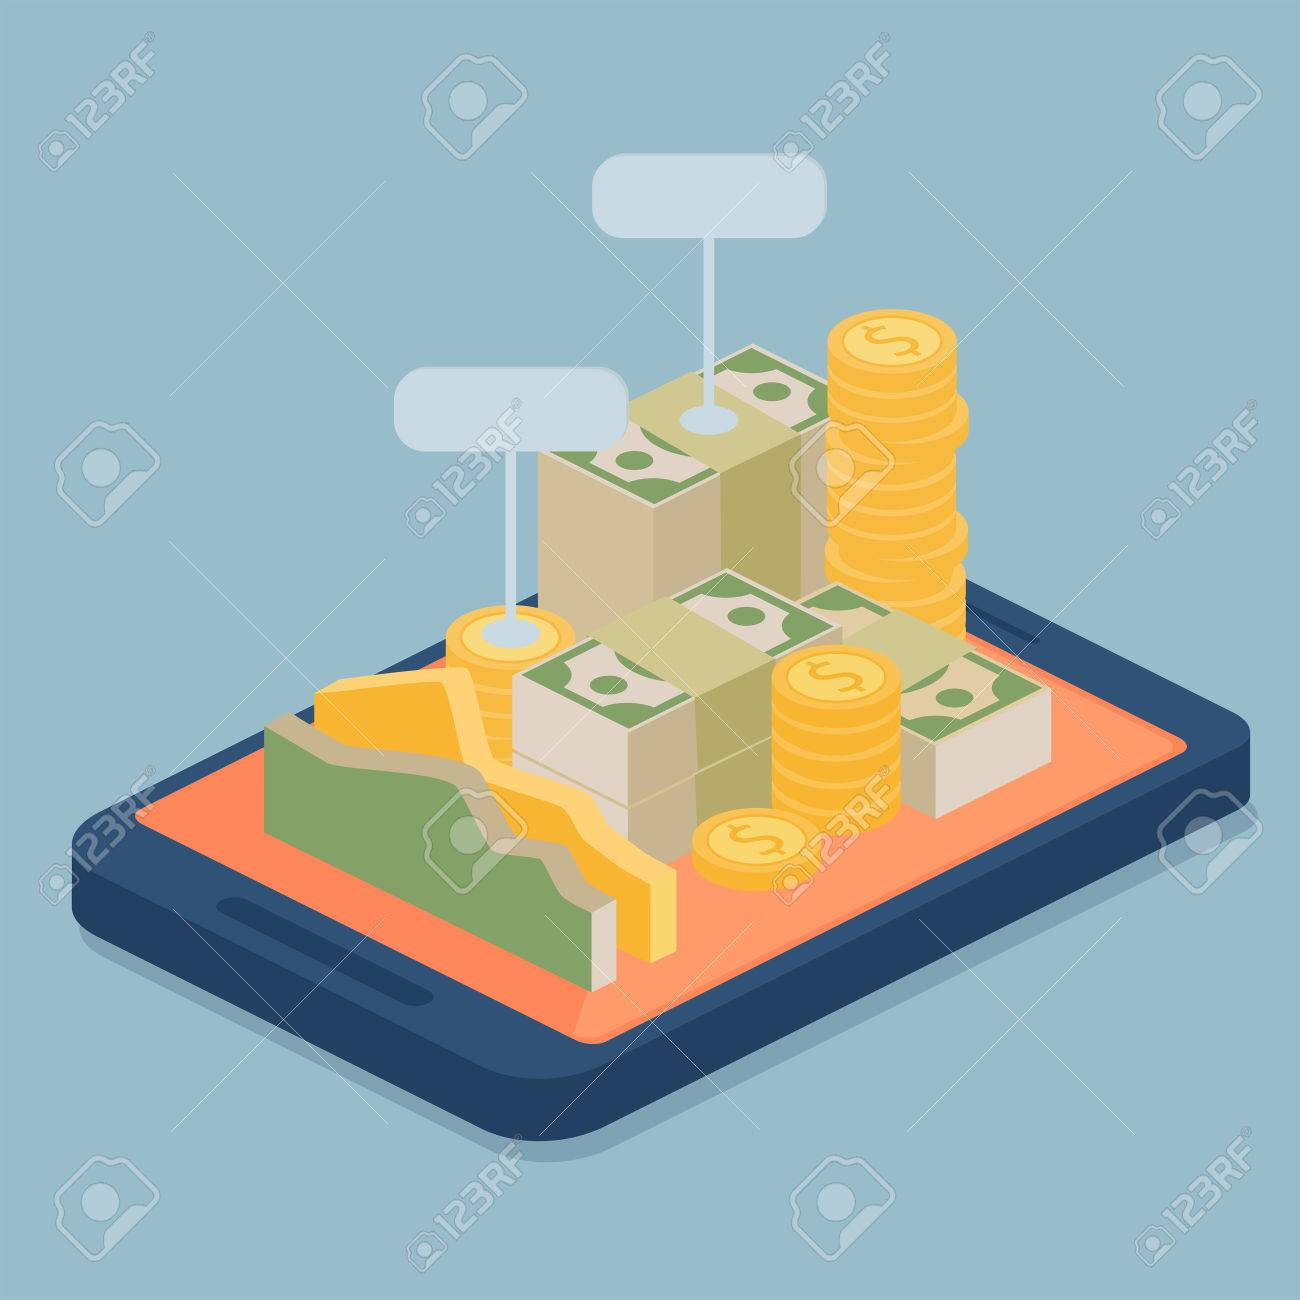 Mobile e-bank with currency in the form of gold coins and packaged stacks of banknotes with blank signs piled on the screen of a mobile device, vector illustration Stock Vector - 48104837